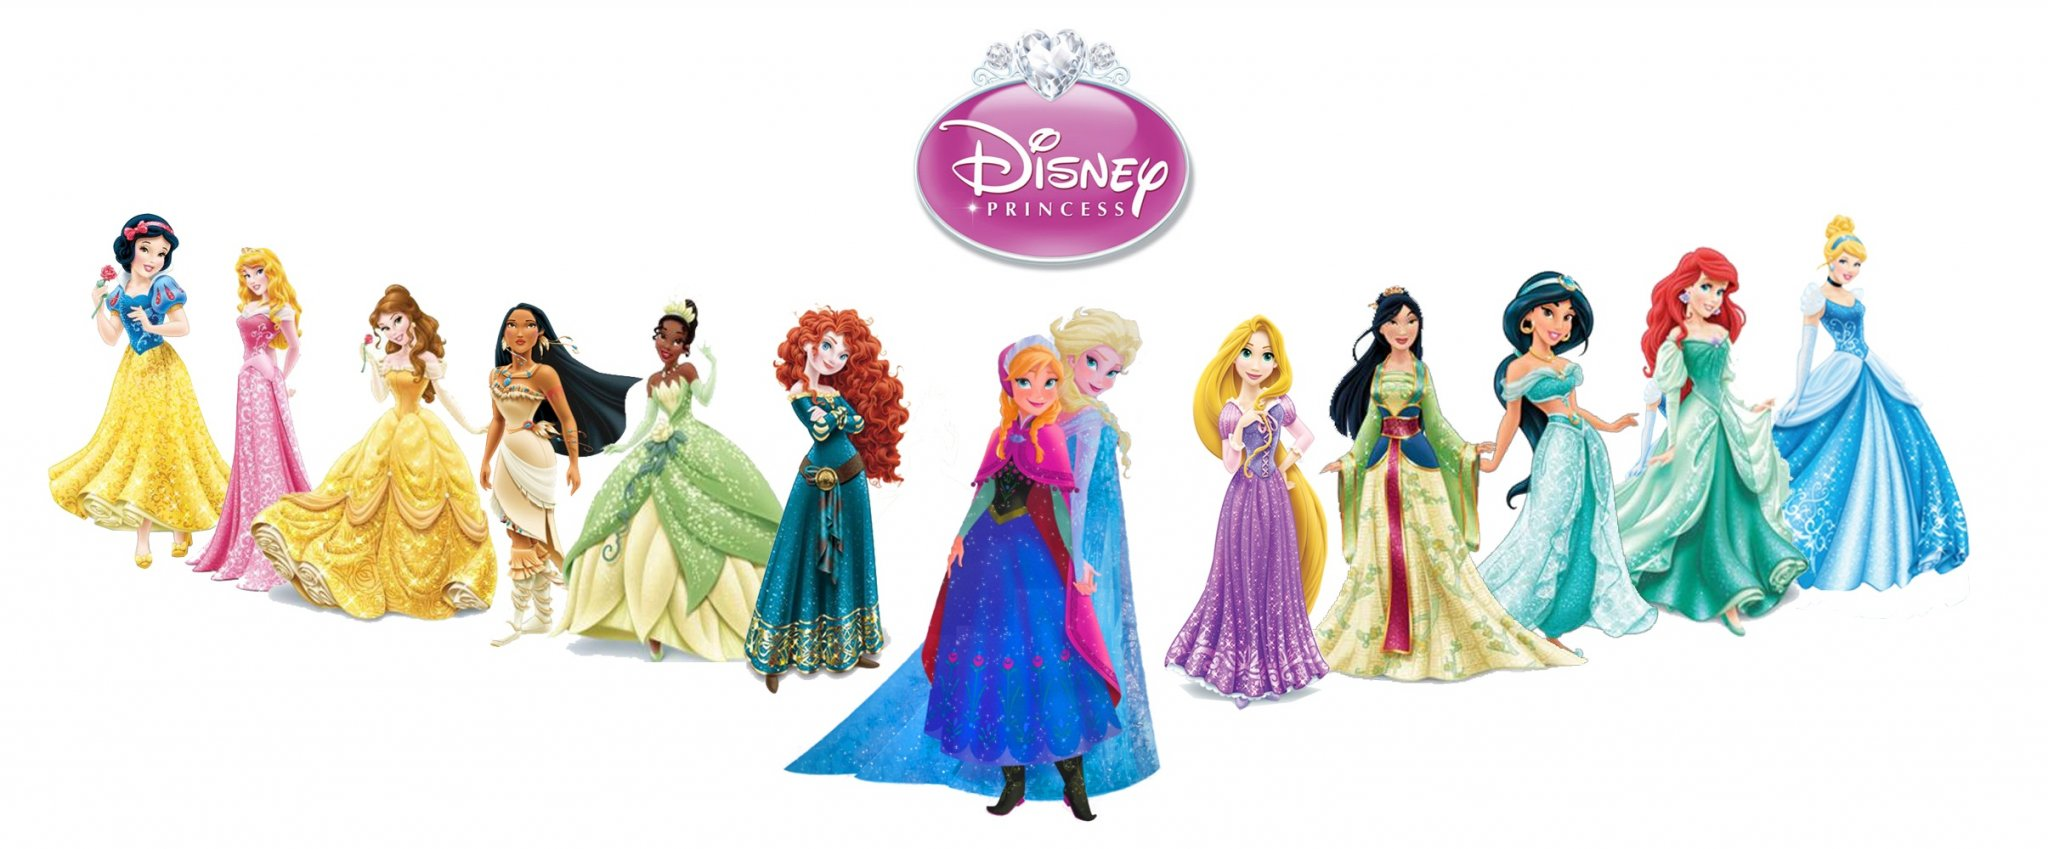 Disney Princess 2014